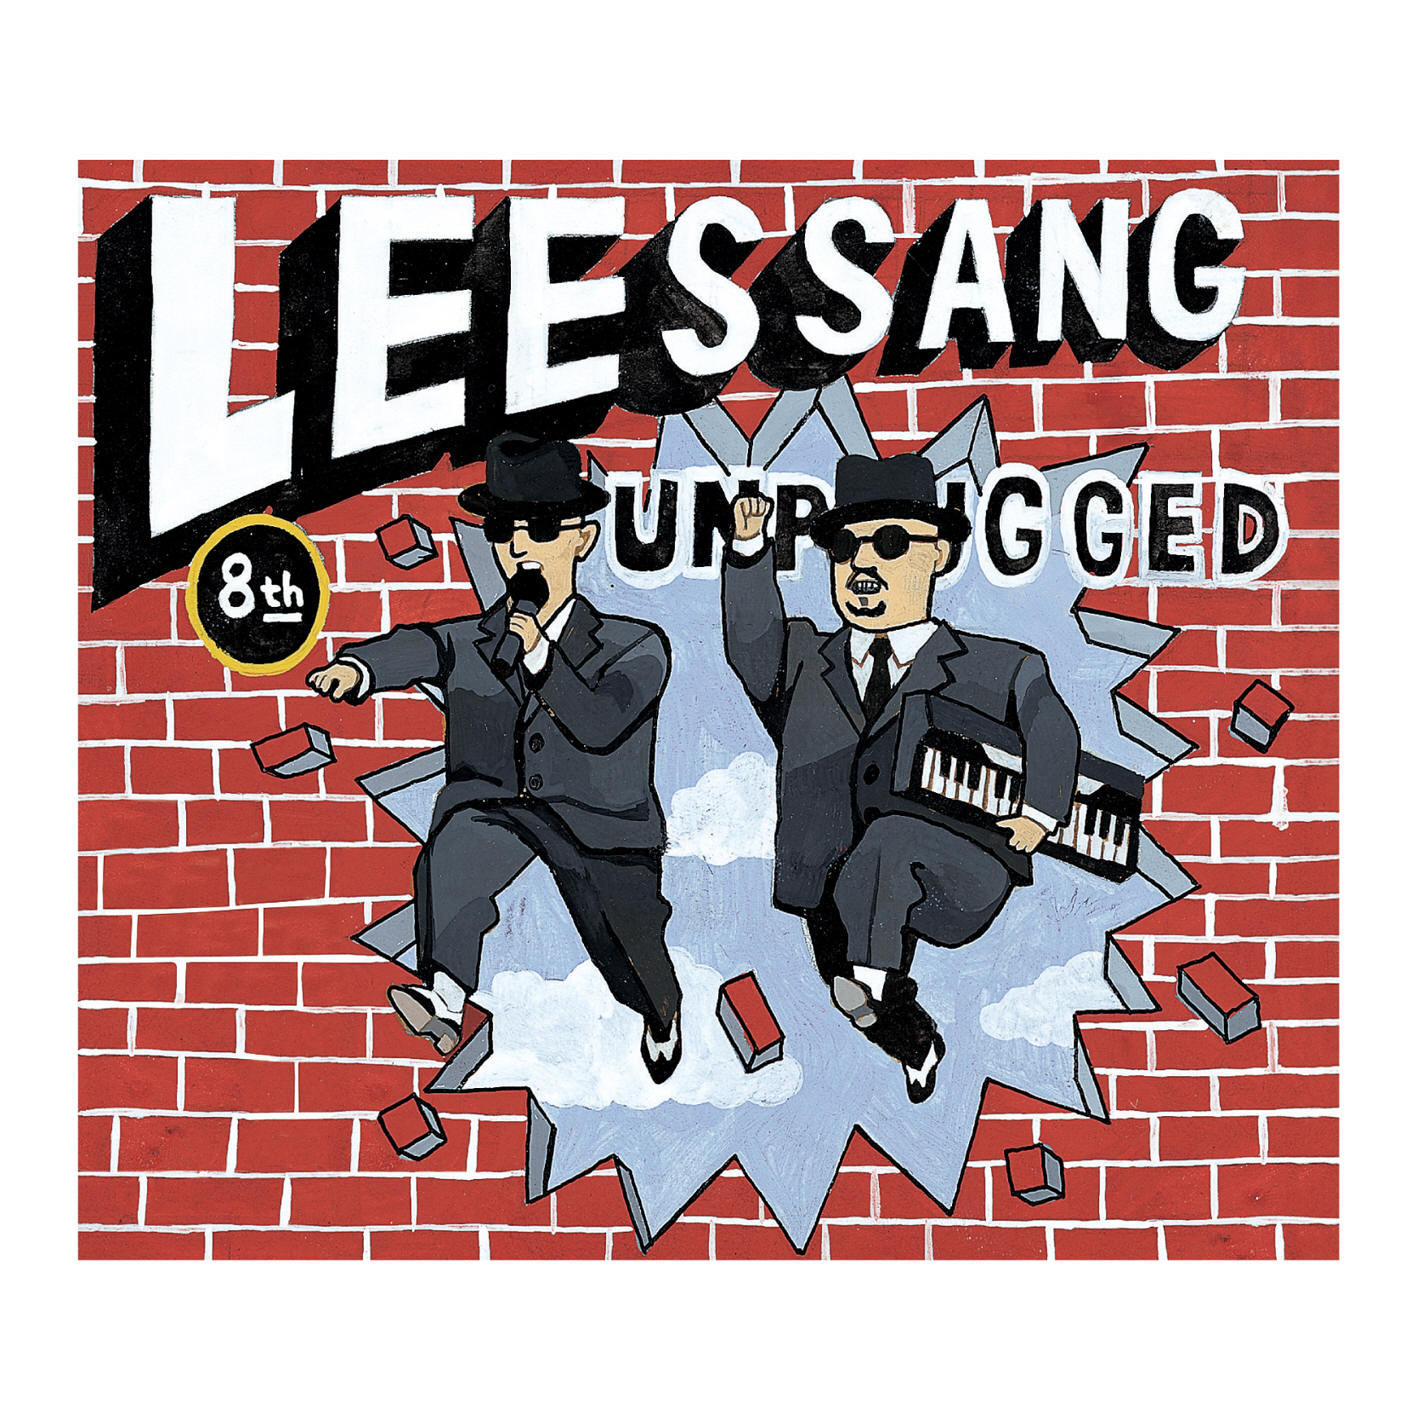 [Album] Leessang - Unplugged [VOL. 8]